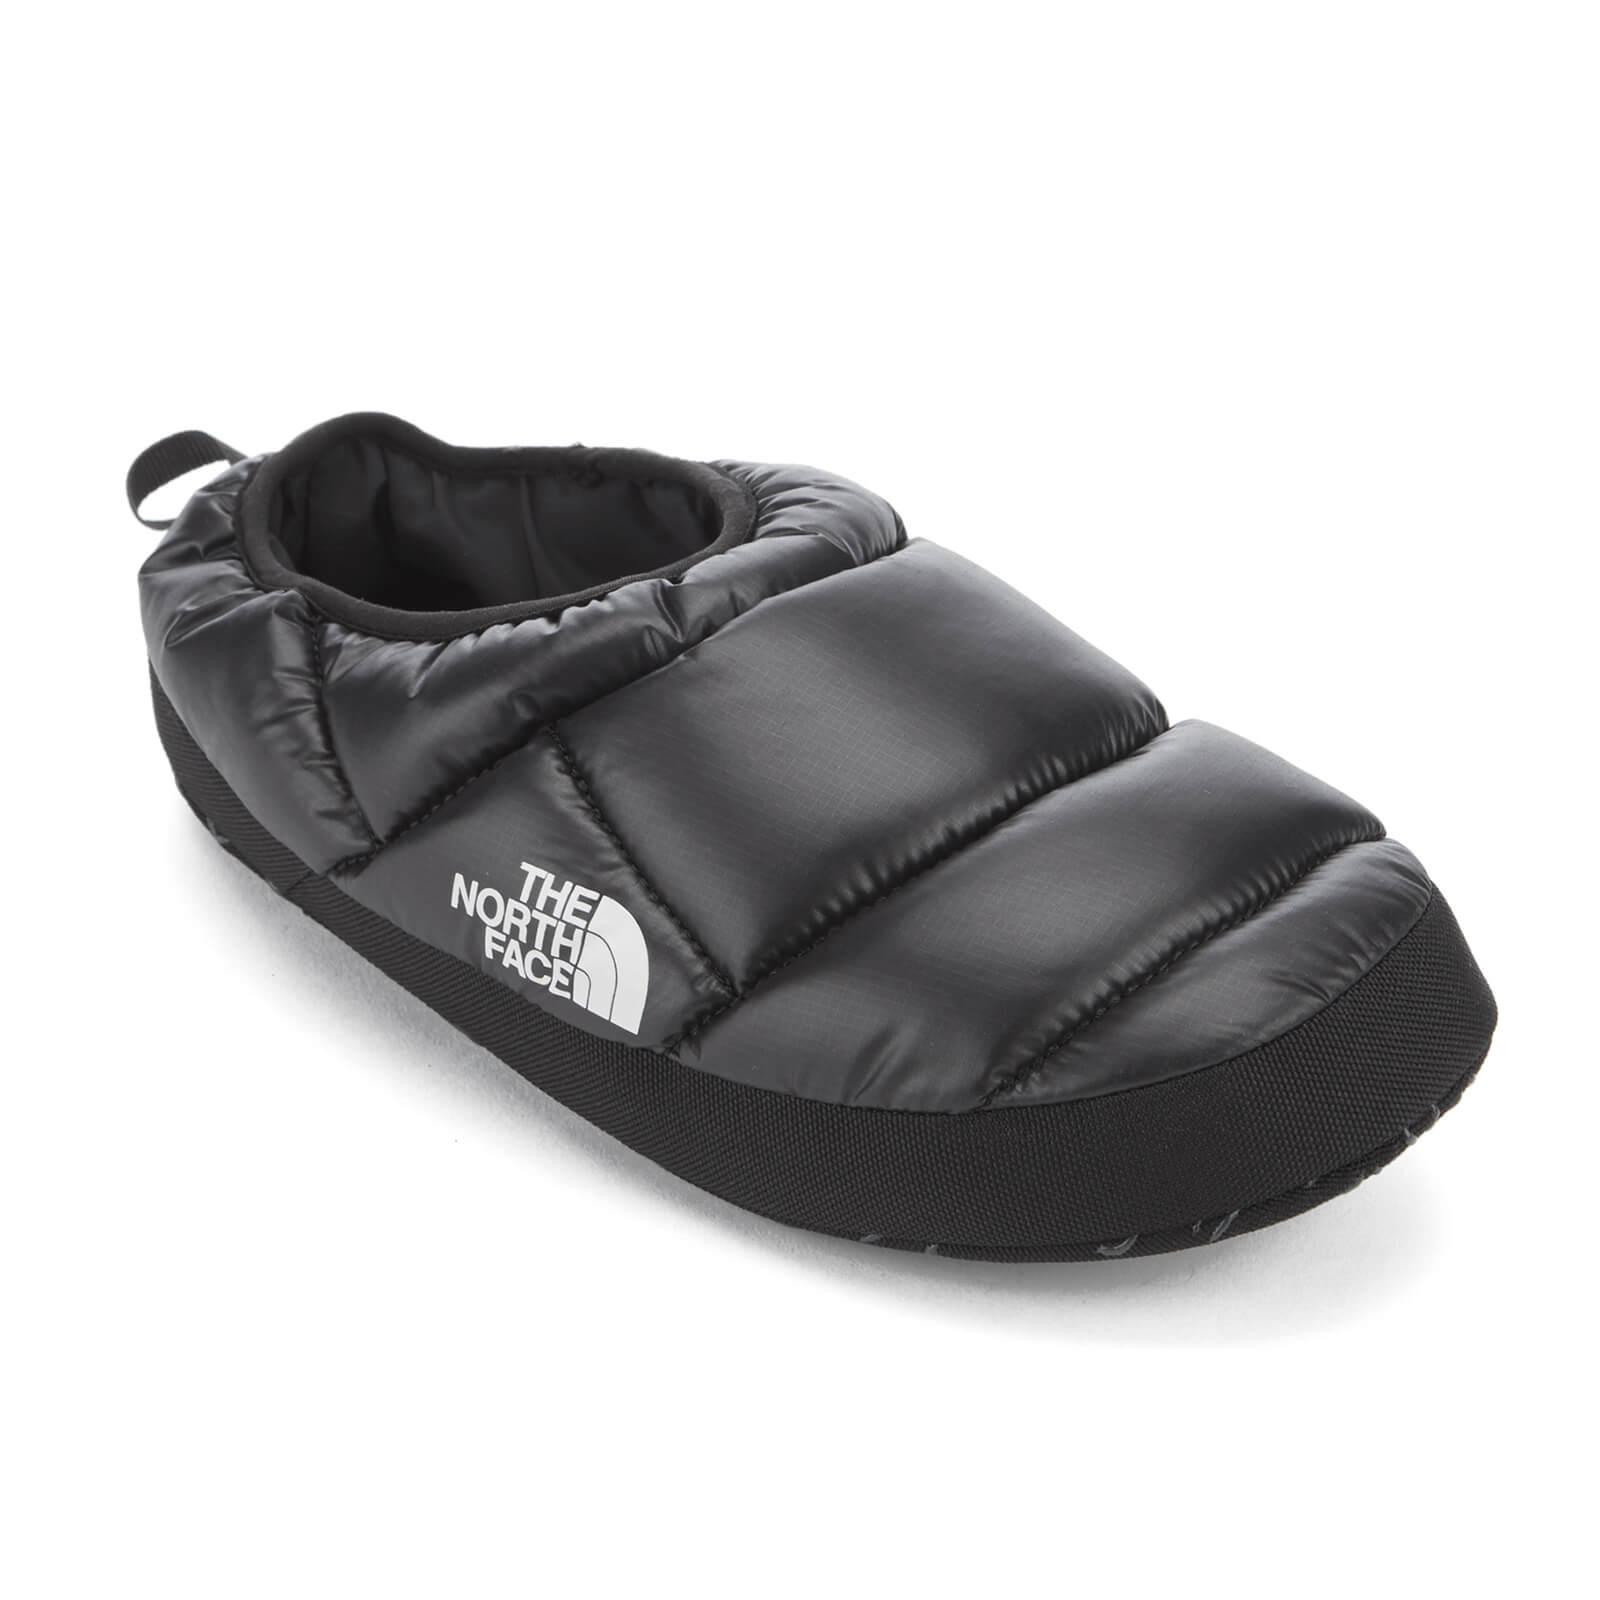 bc9d95b393a2 The North Face - Black Nse Tent Mule Iii Slippers for Men - Lyst. View  fullscreen